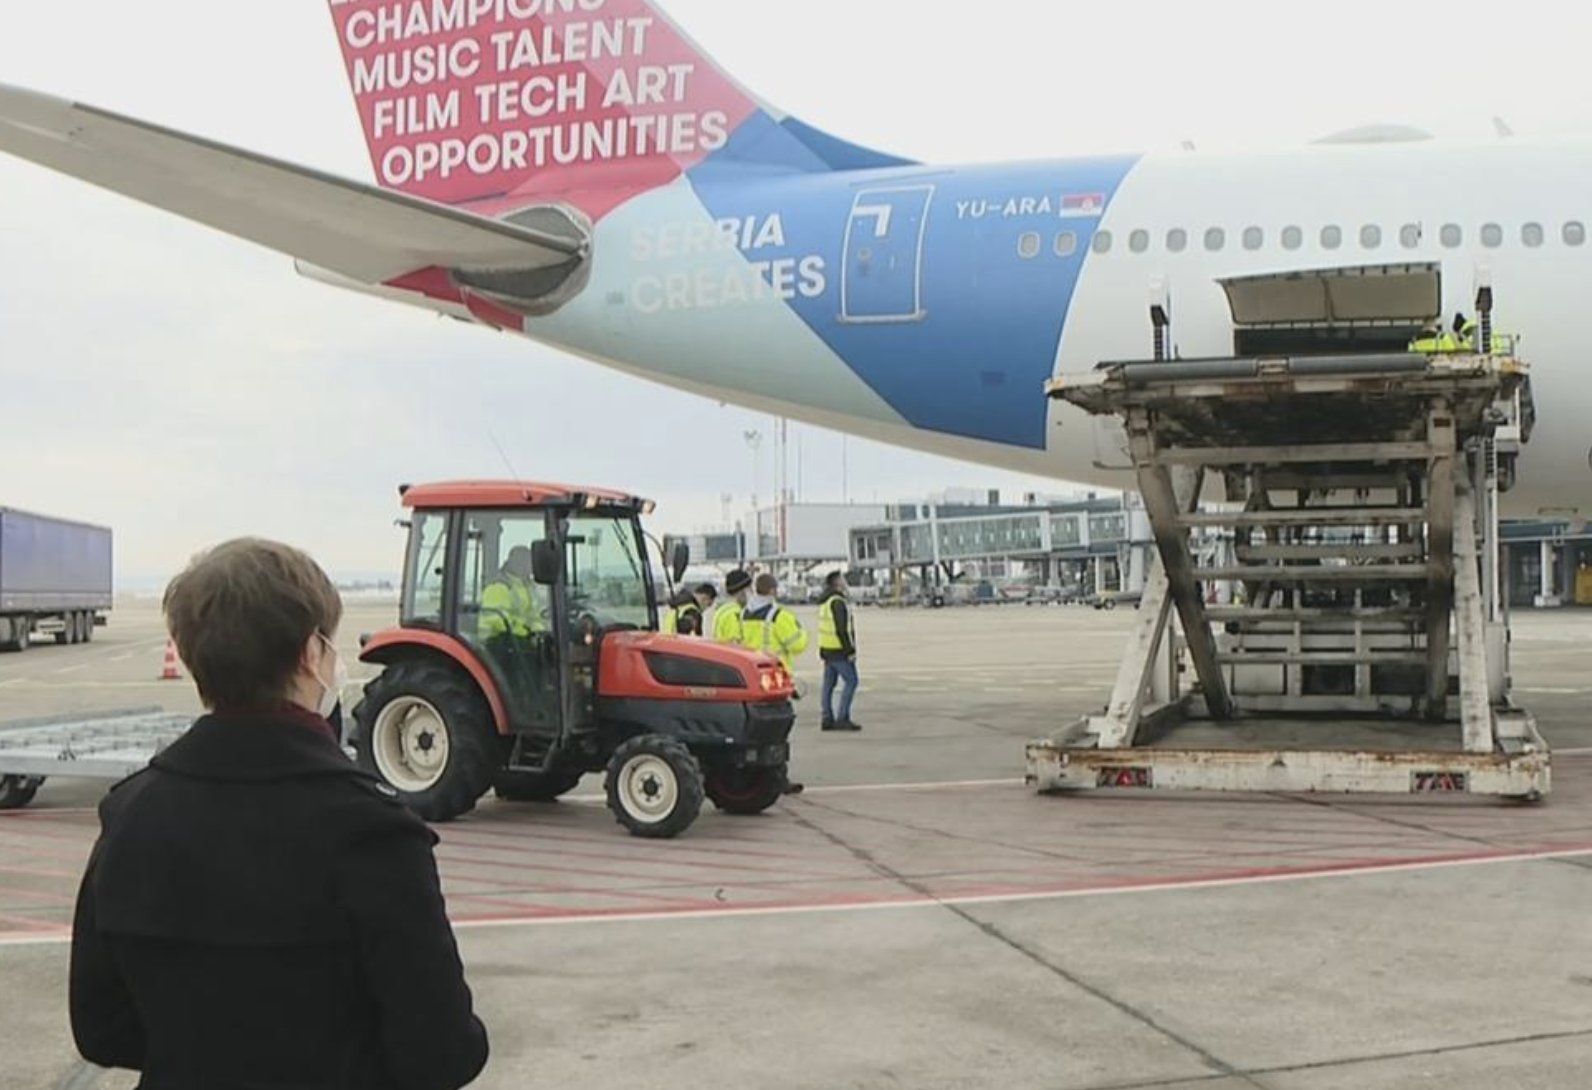 Serbia: Bahrain's donation of medical equipment to fight COVID-19 arrived today at Nikola Tesla airport